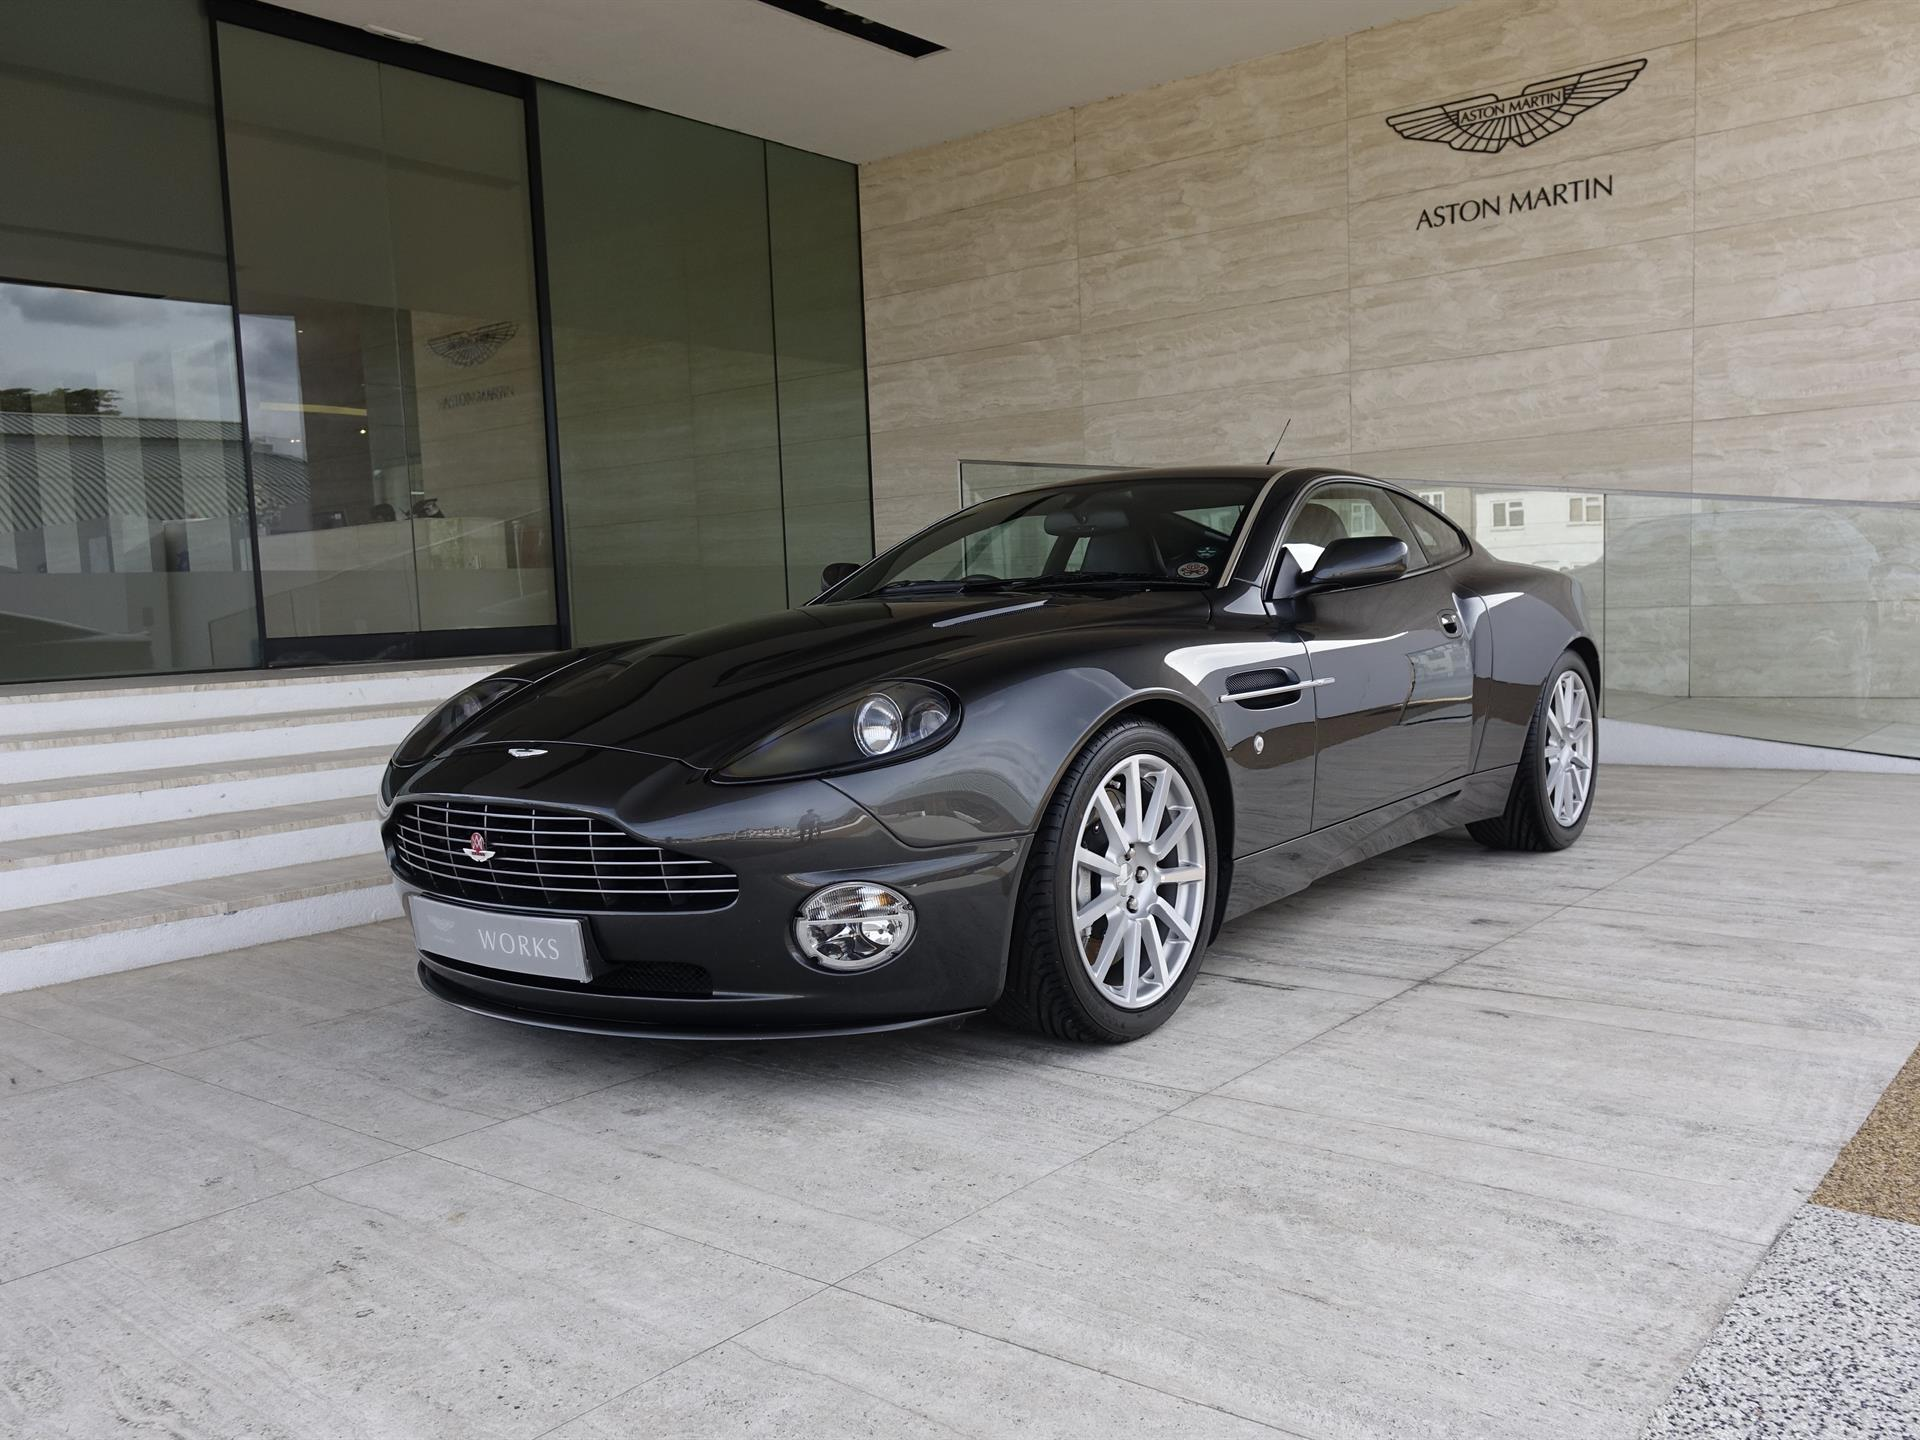 pre-owned | aston martin newport pagnell - official aston martin